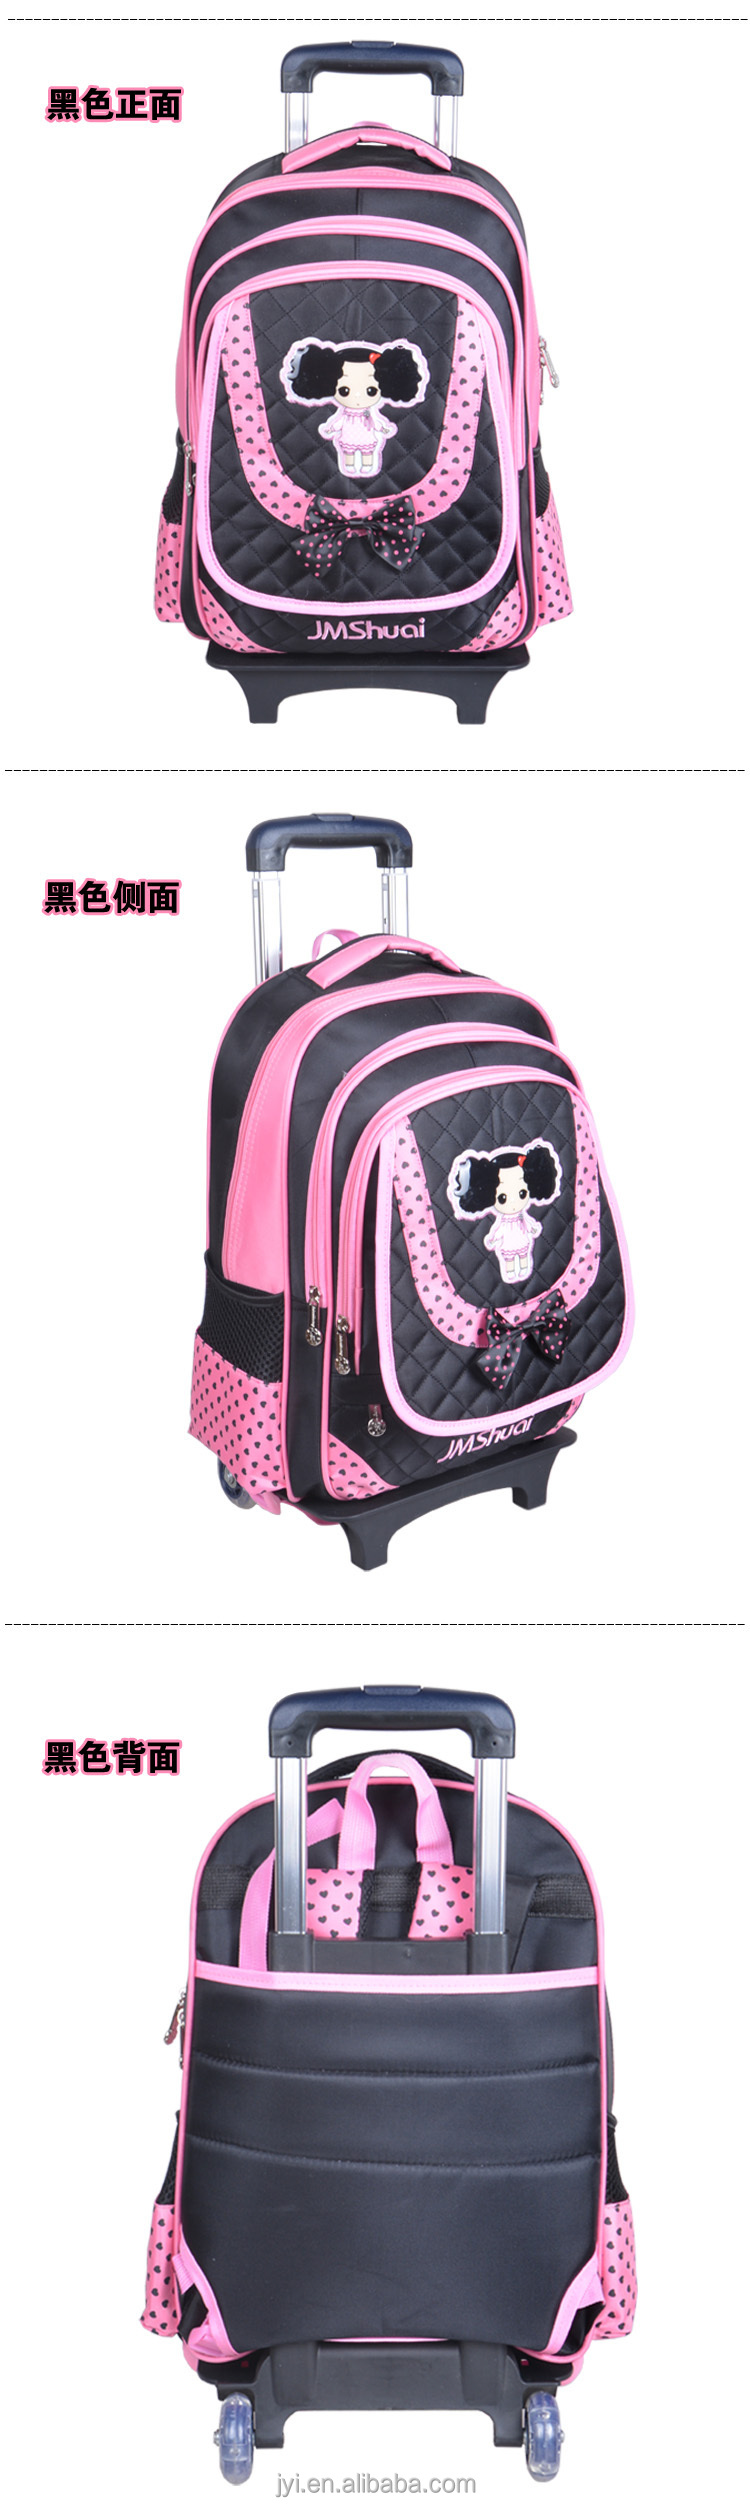 School bag hs code - Wholesale Detachable Kids School Bag With Wheels For Girls